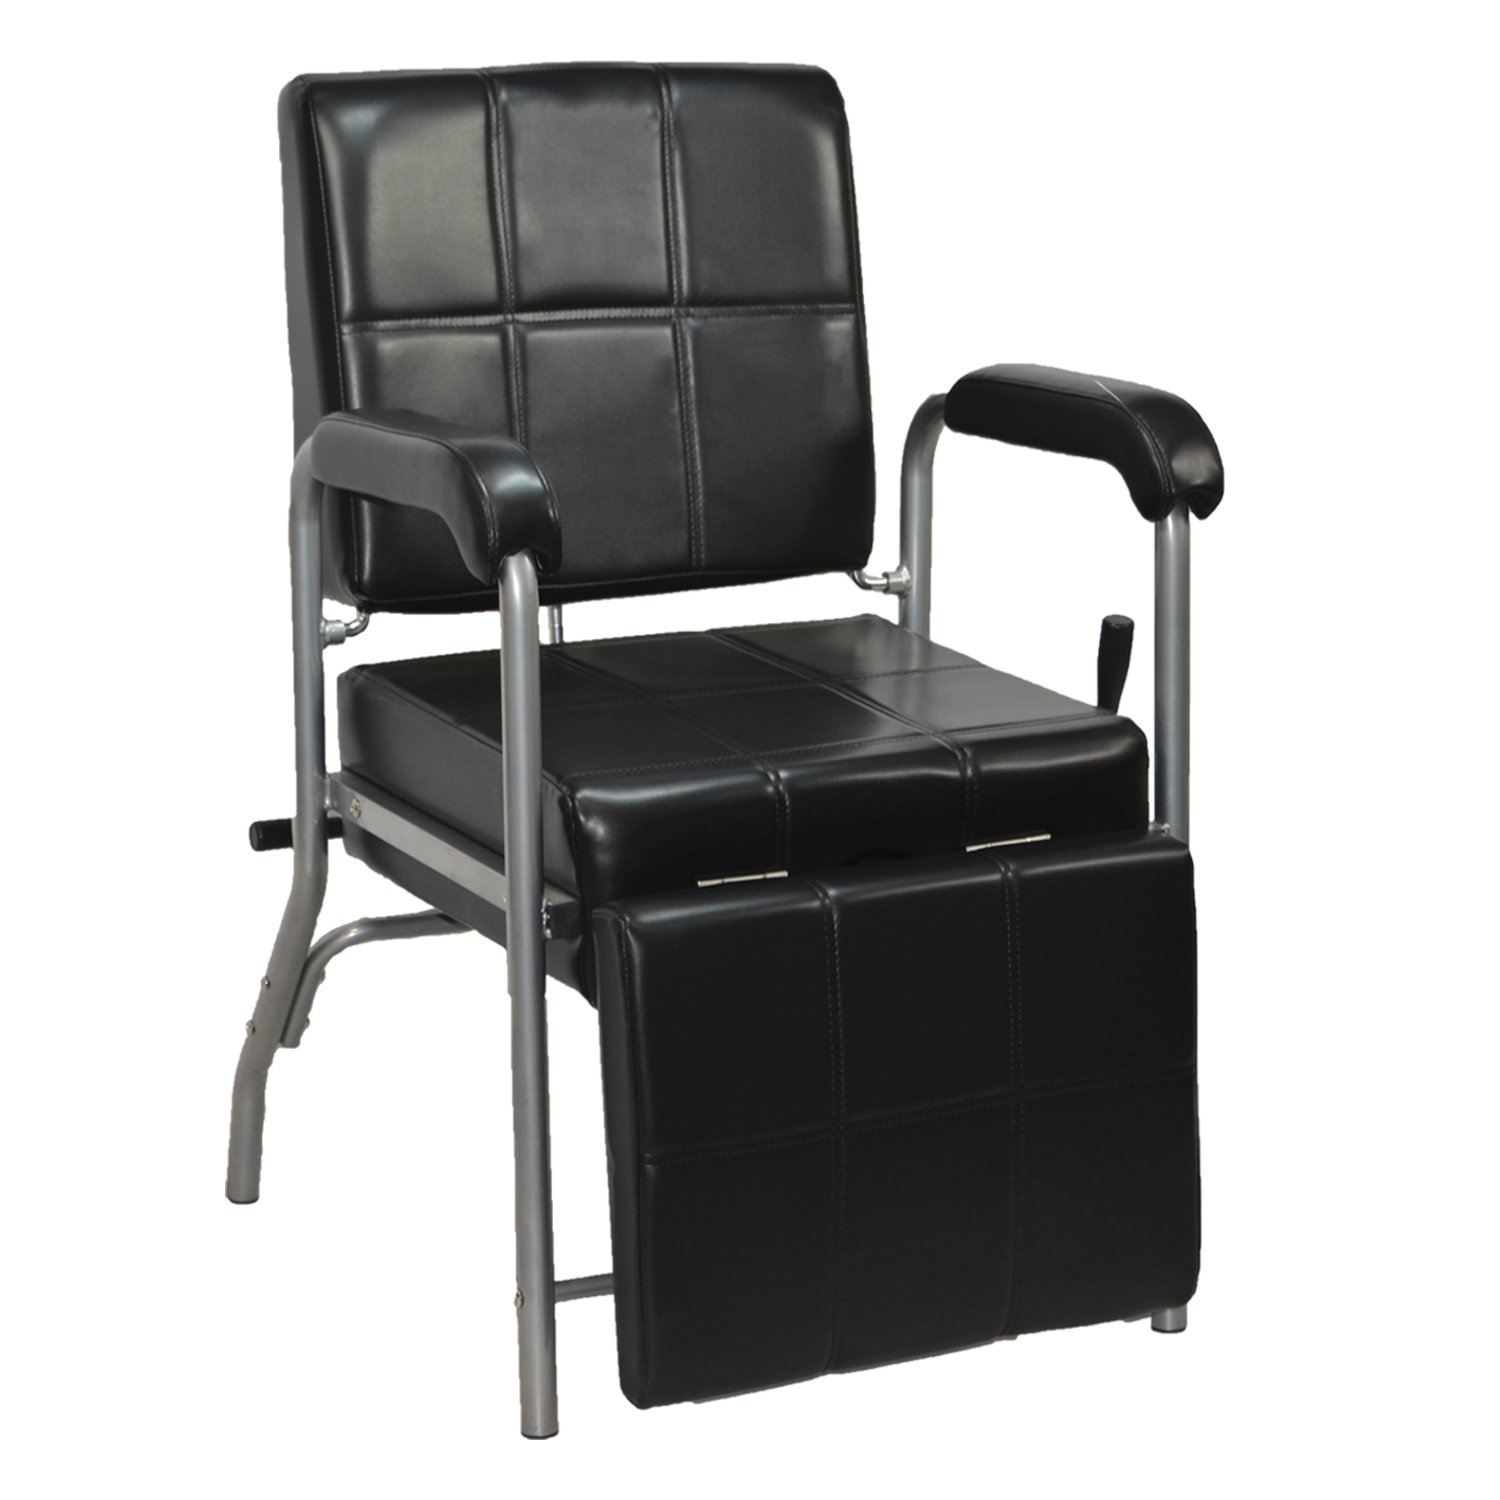 Amazon LCL Beauty Black Deluxe Reclining Shampoo Chair with